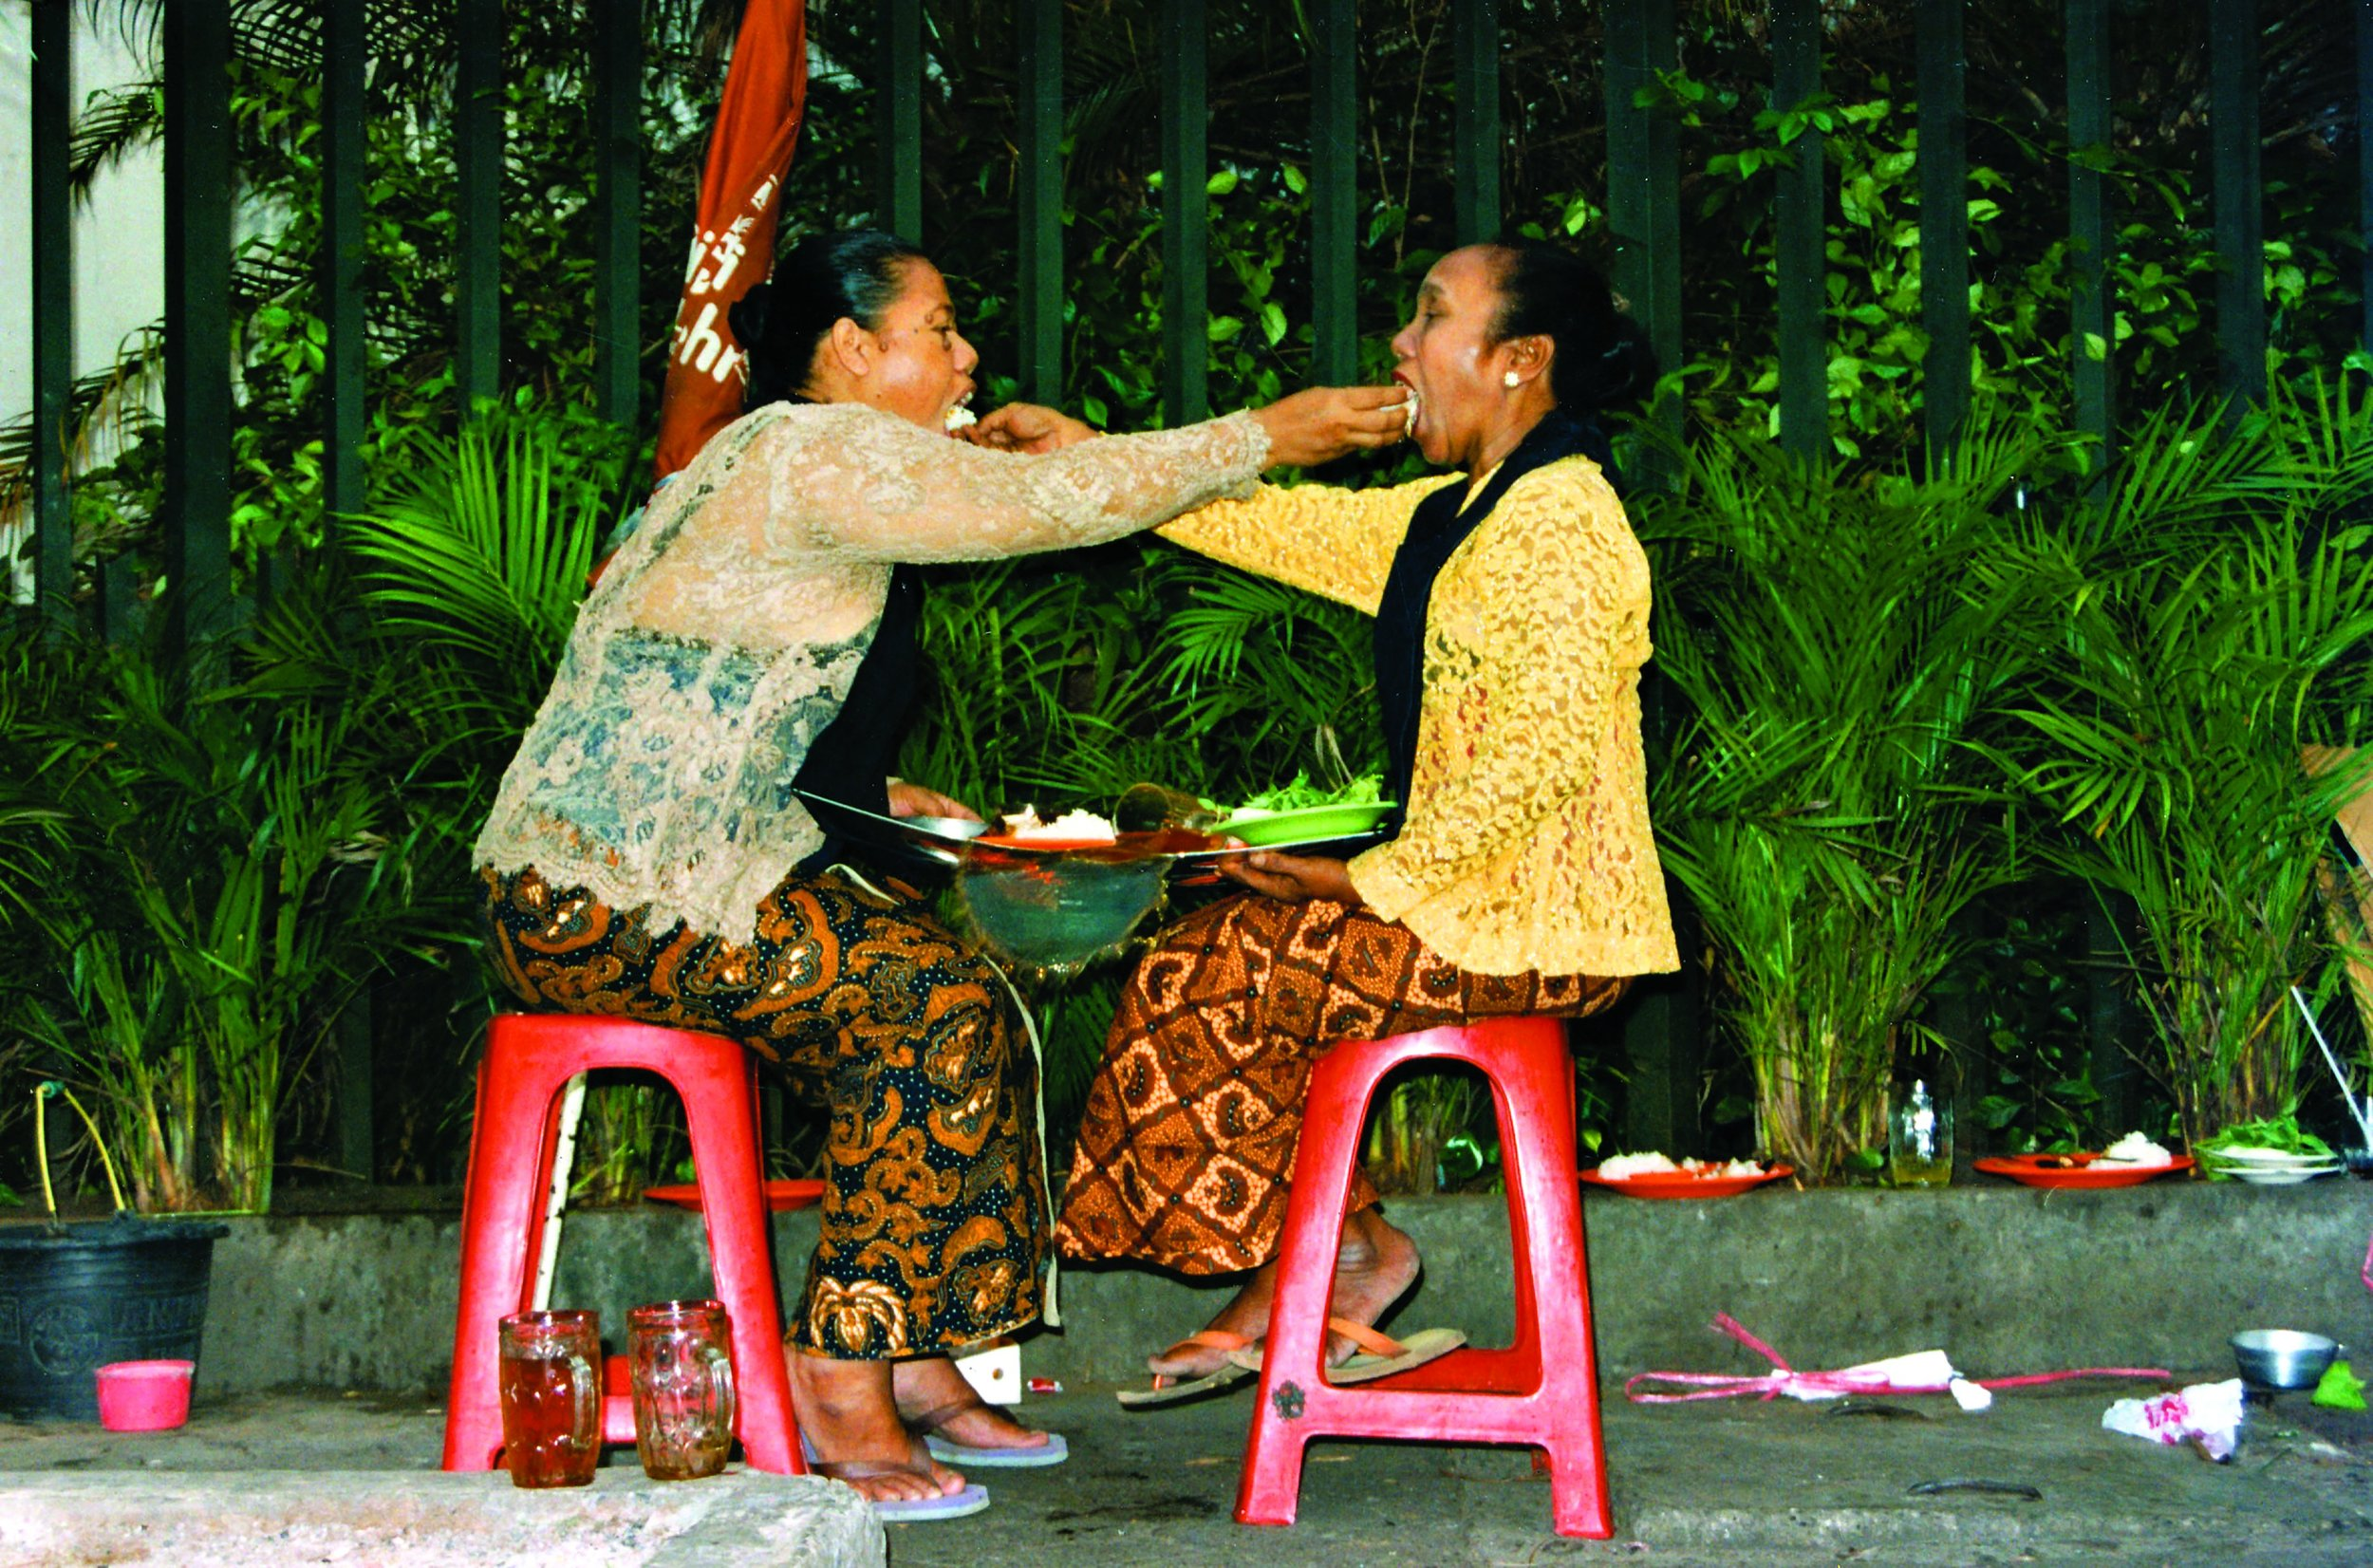 Mella Jaarsma, 'I Eat You Eat Me', 2001 – 2012, Performance in Jakarta, Indonesia, 2001. Collection of the artist. Image courtesy of the artist.